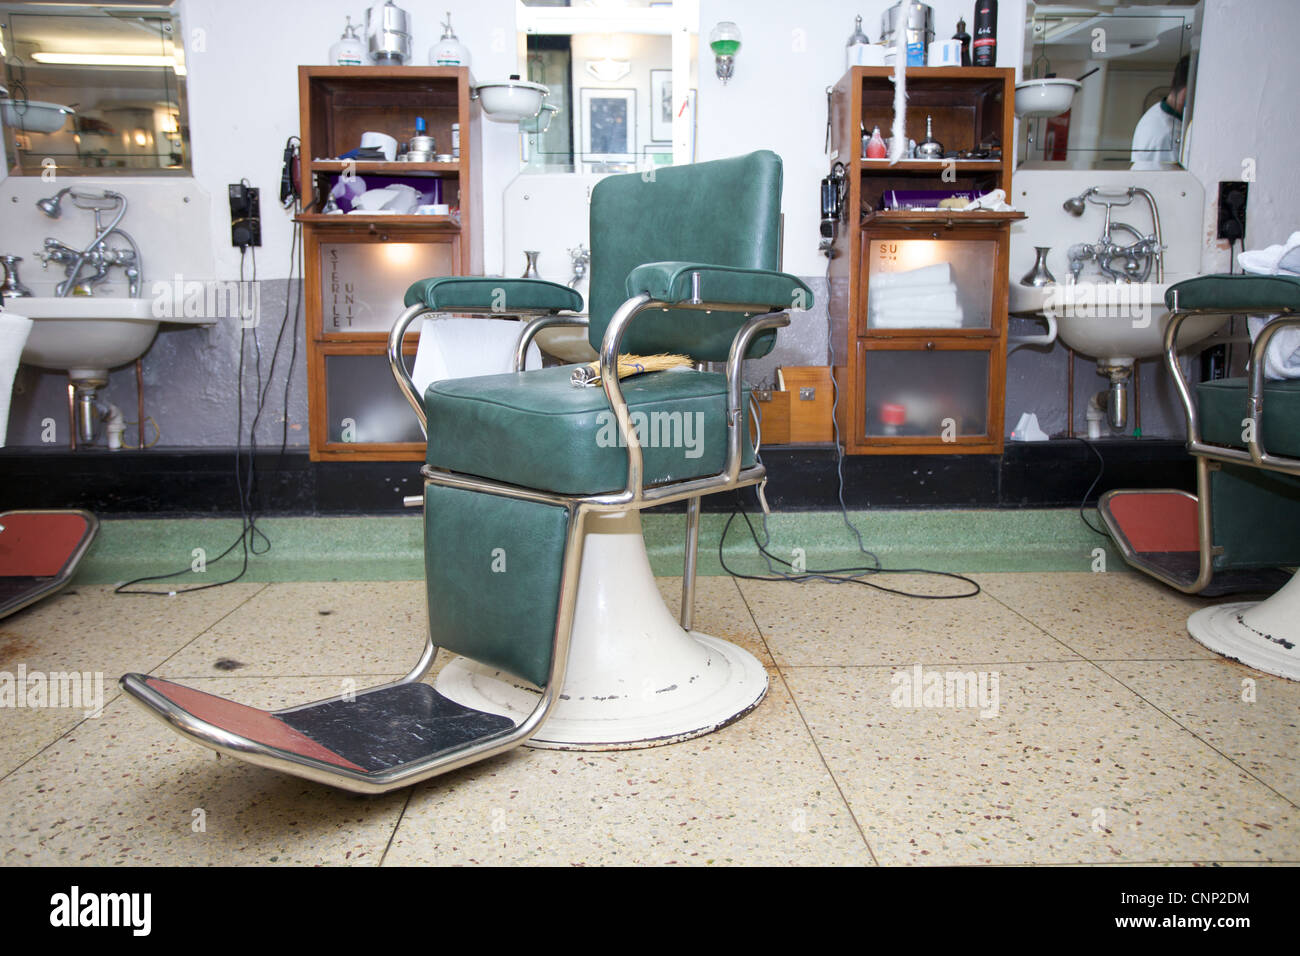 Barbers Chair Stock Photos Barbers Chair Stock Images Alamy